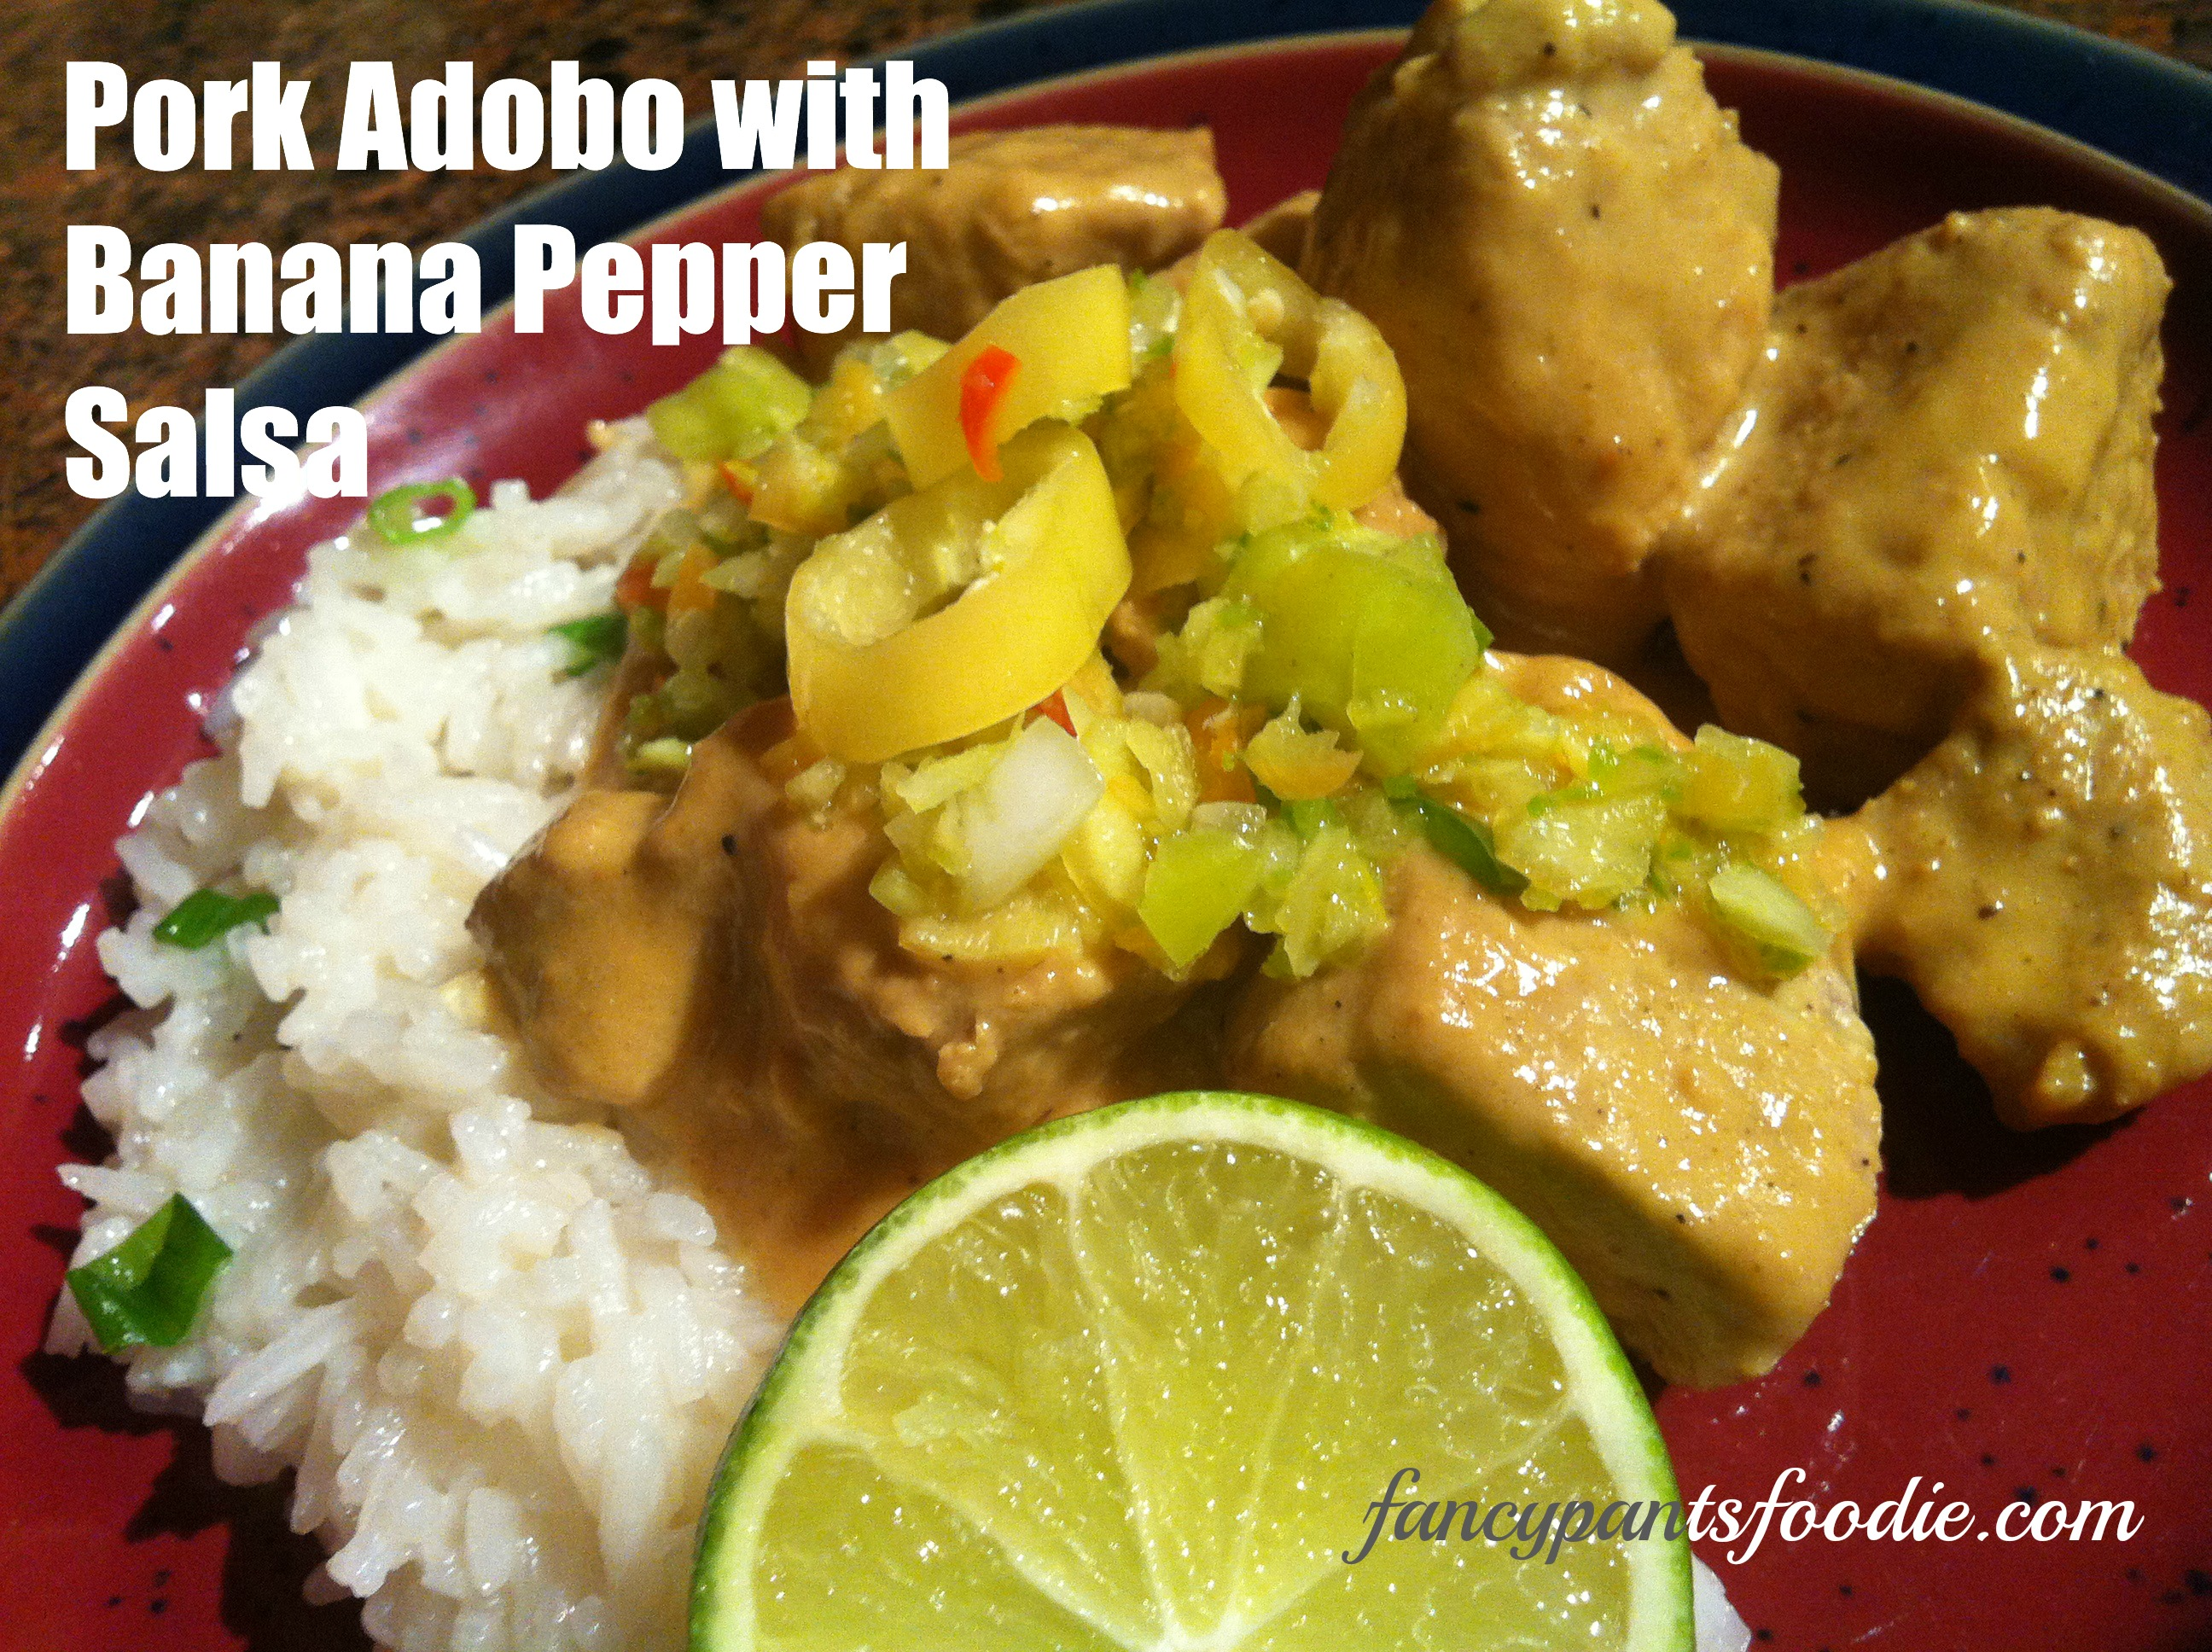 Photo of pork adobo with a salsa/relish made of green and yellow banana and other peppers, white rice with green onion, and a lime slice.